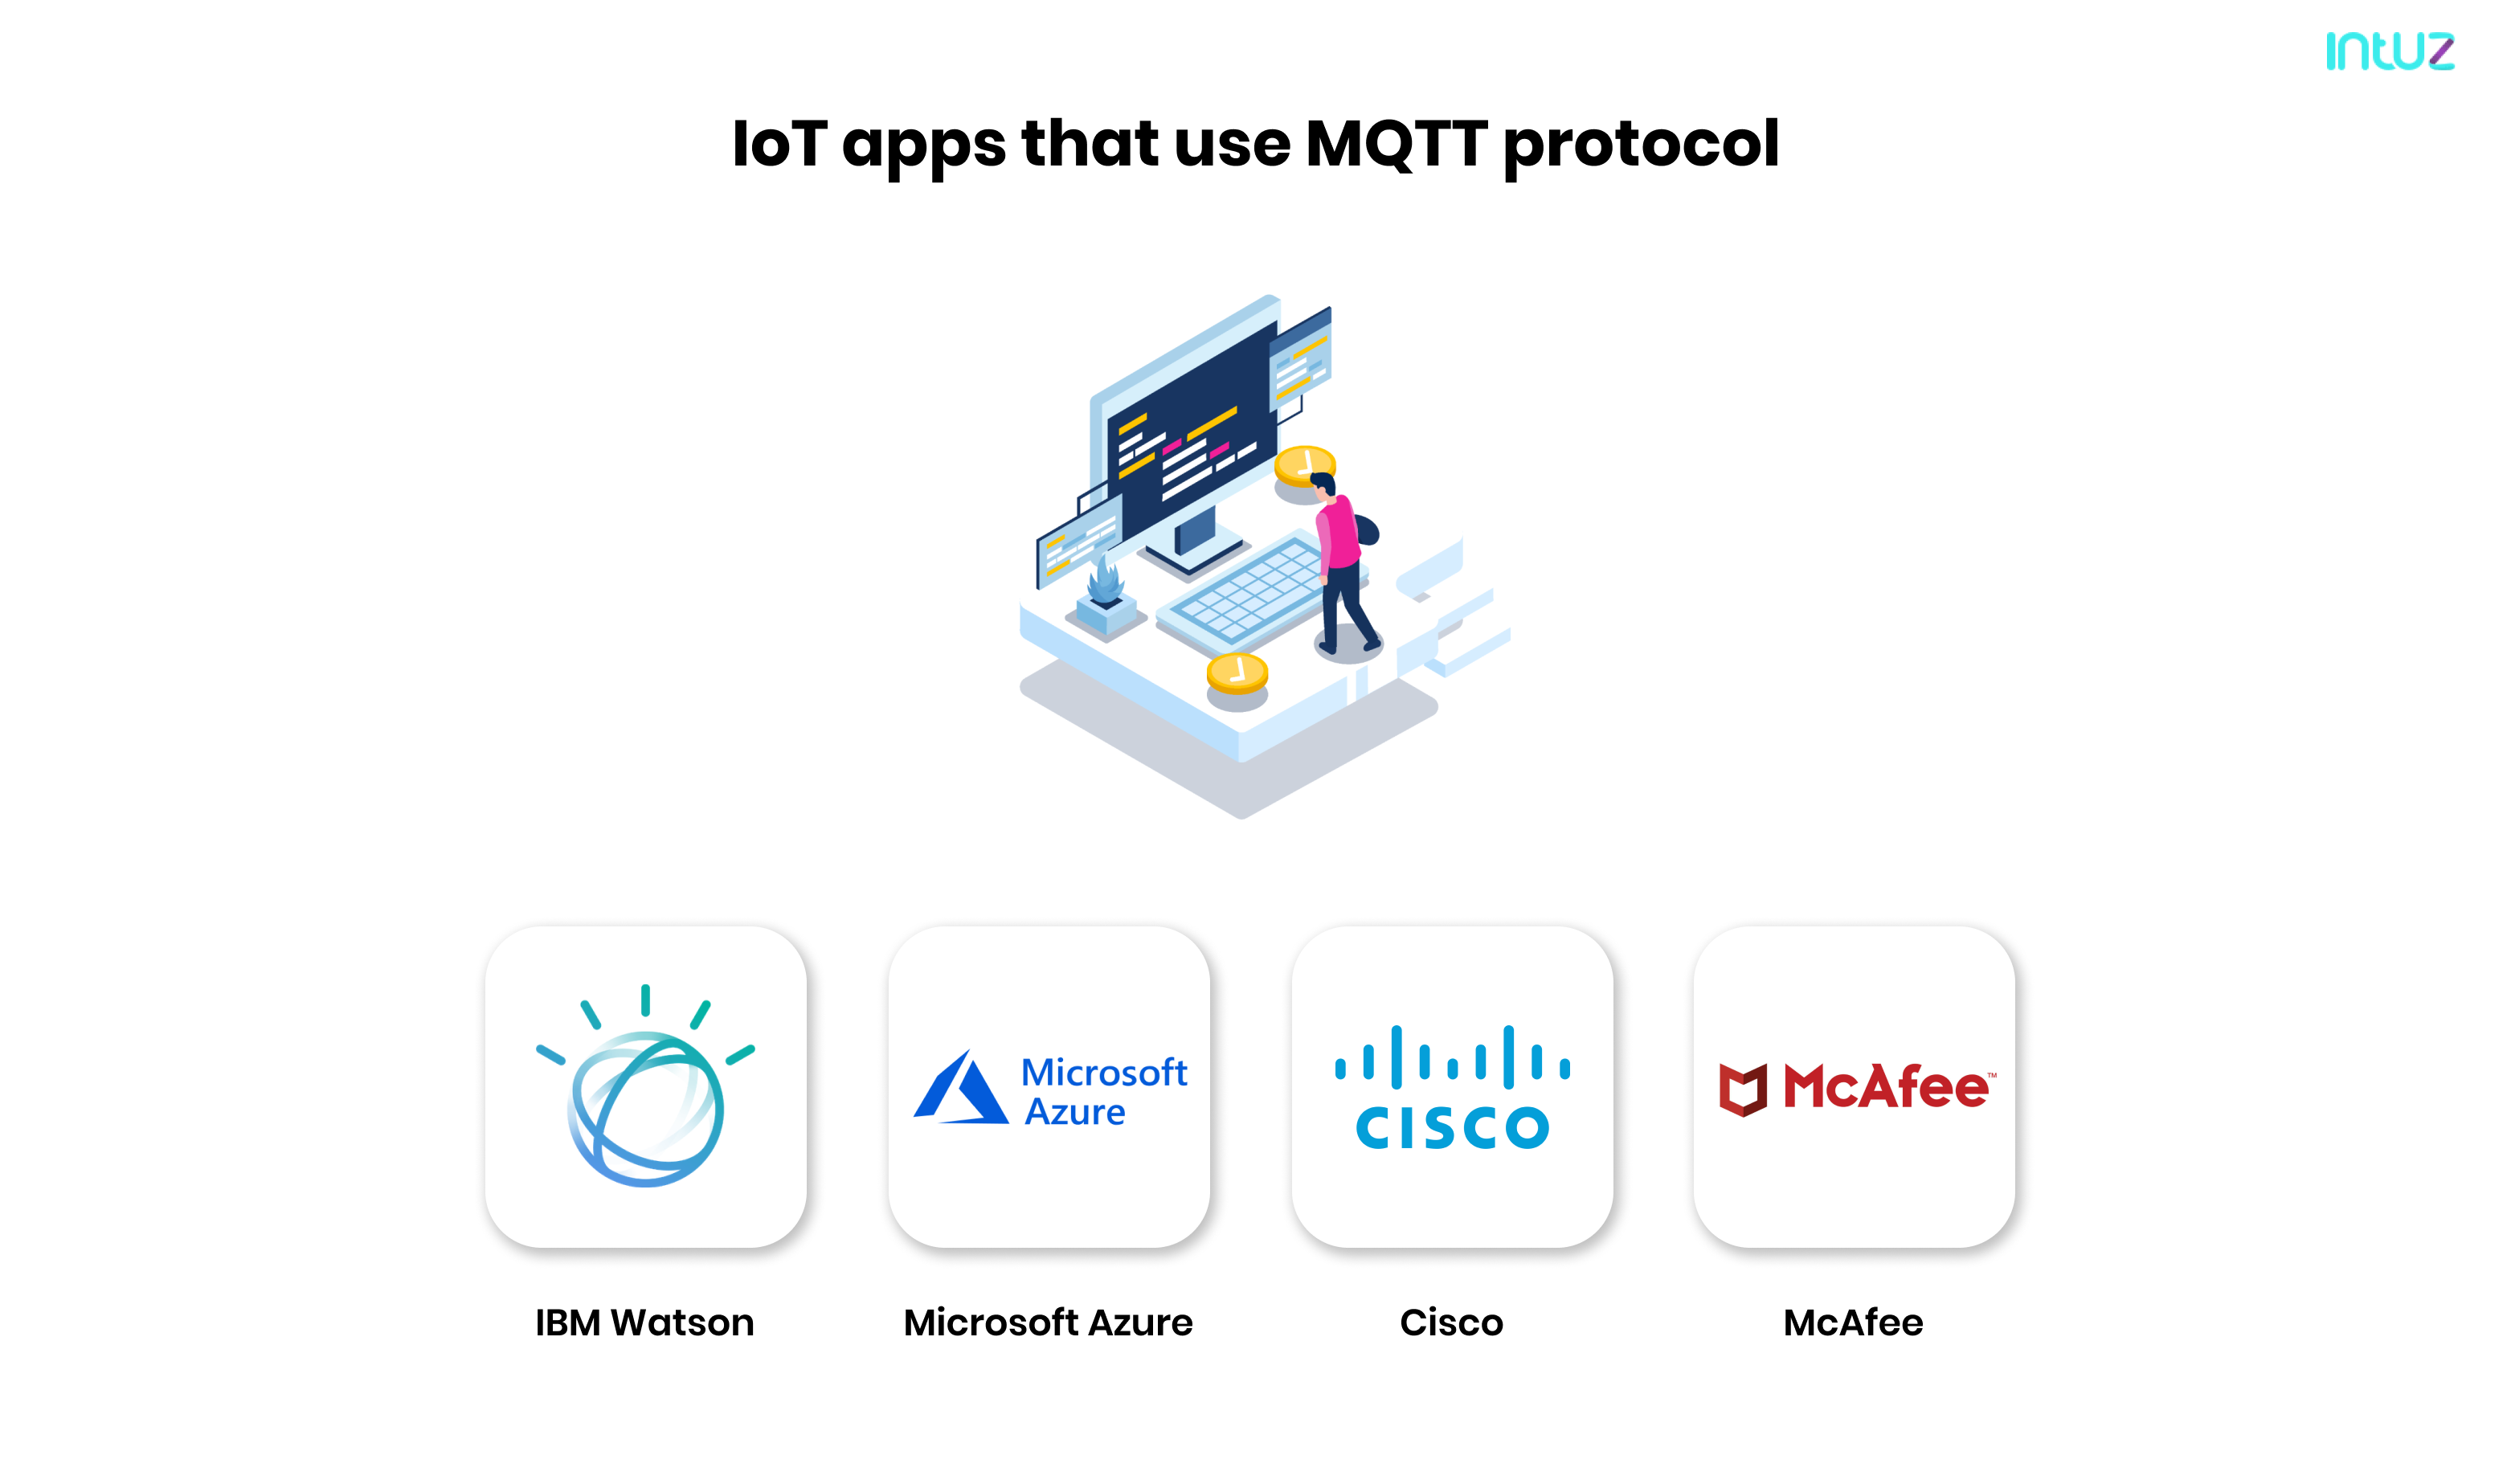 IoT apps that use MQTT protocol